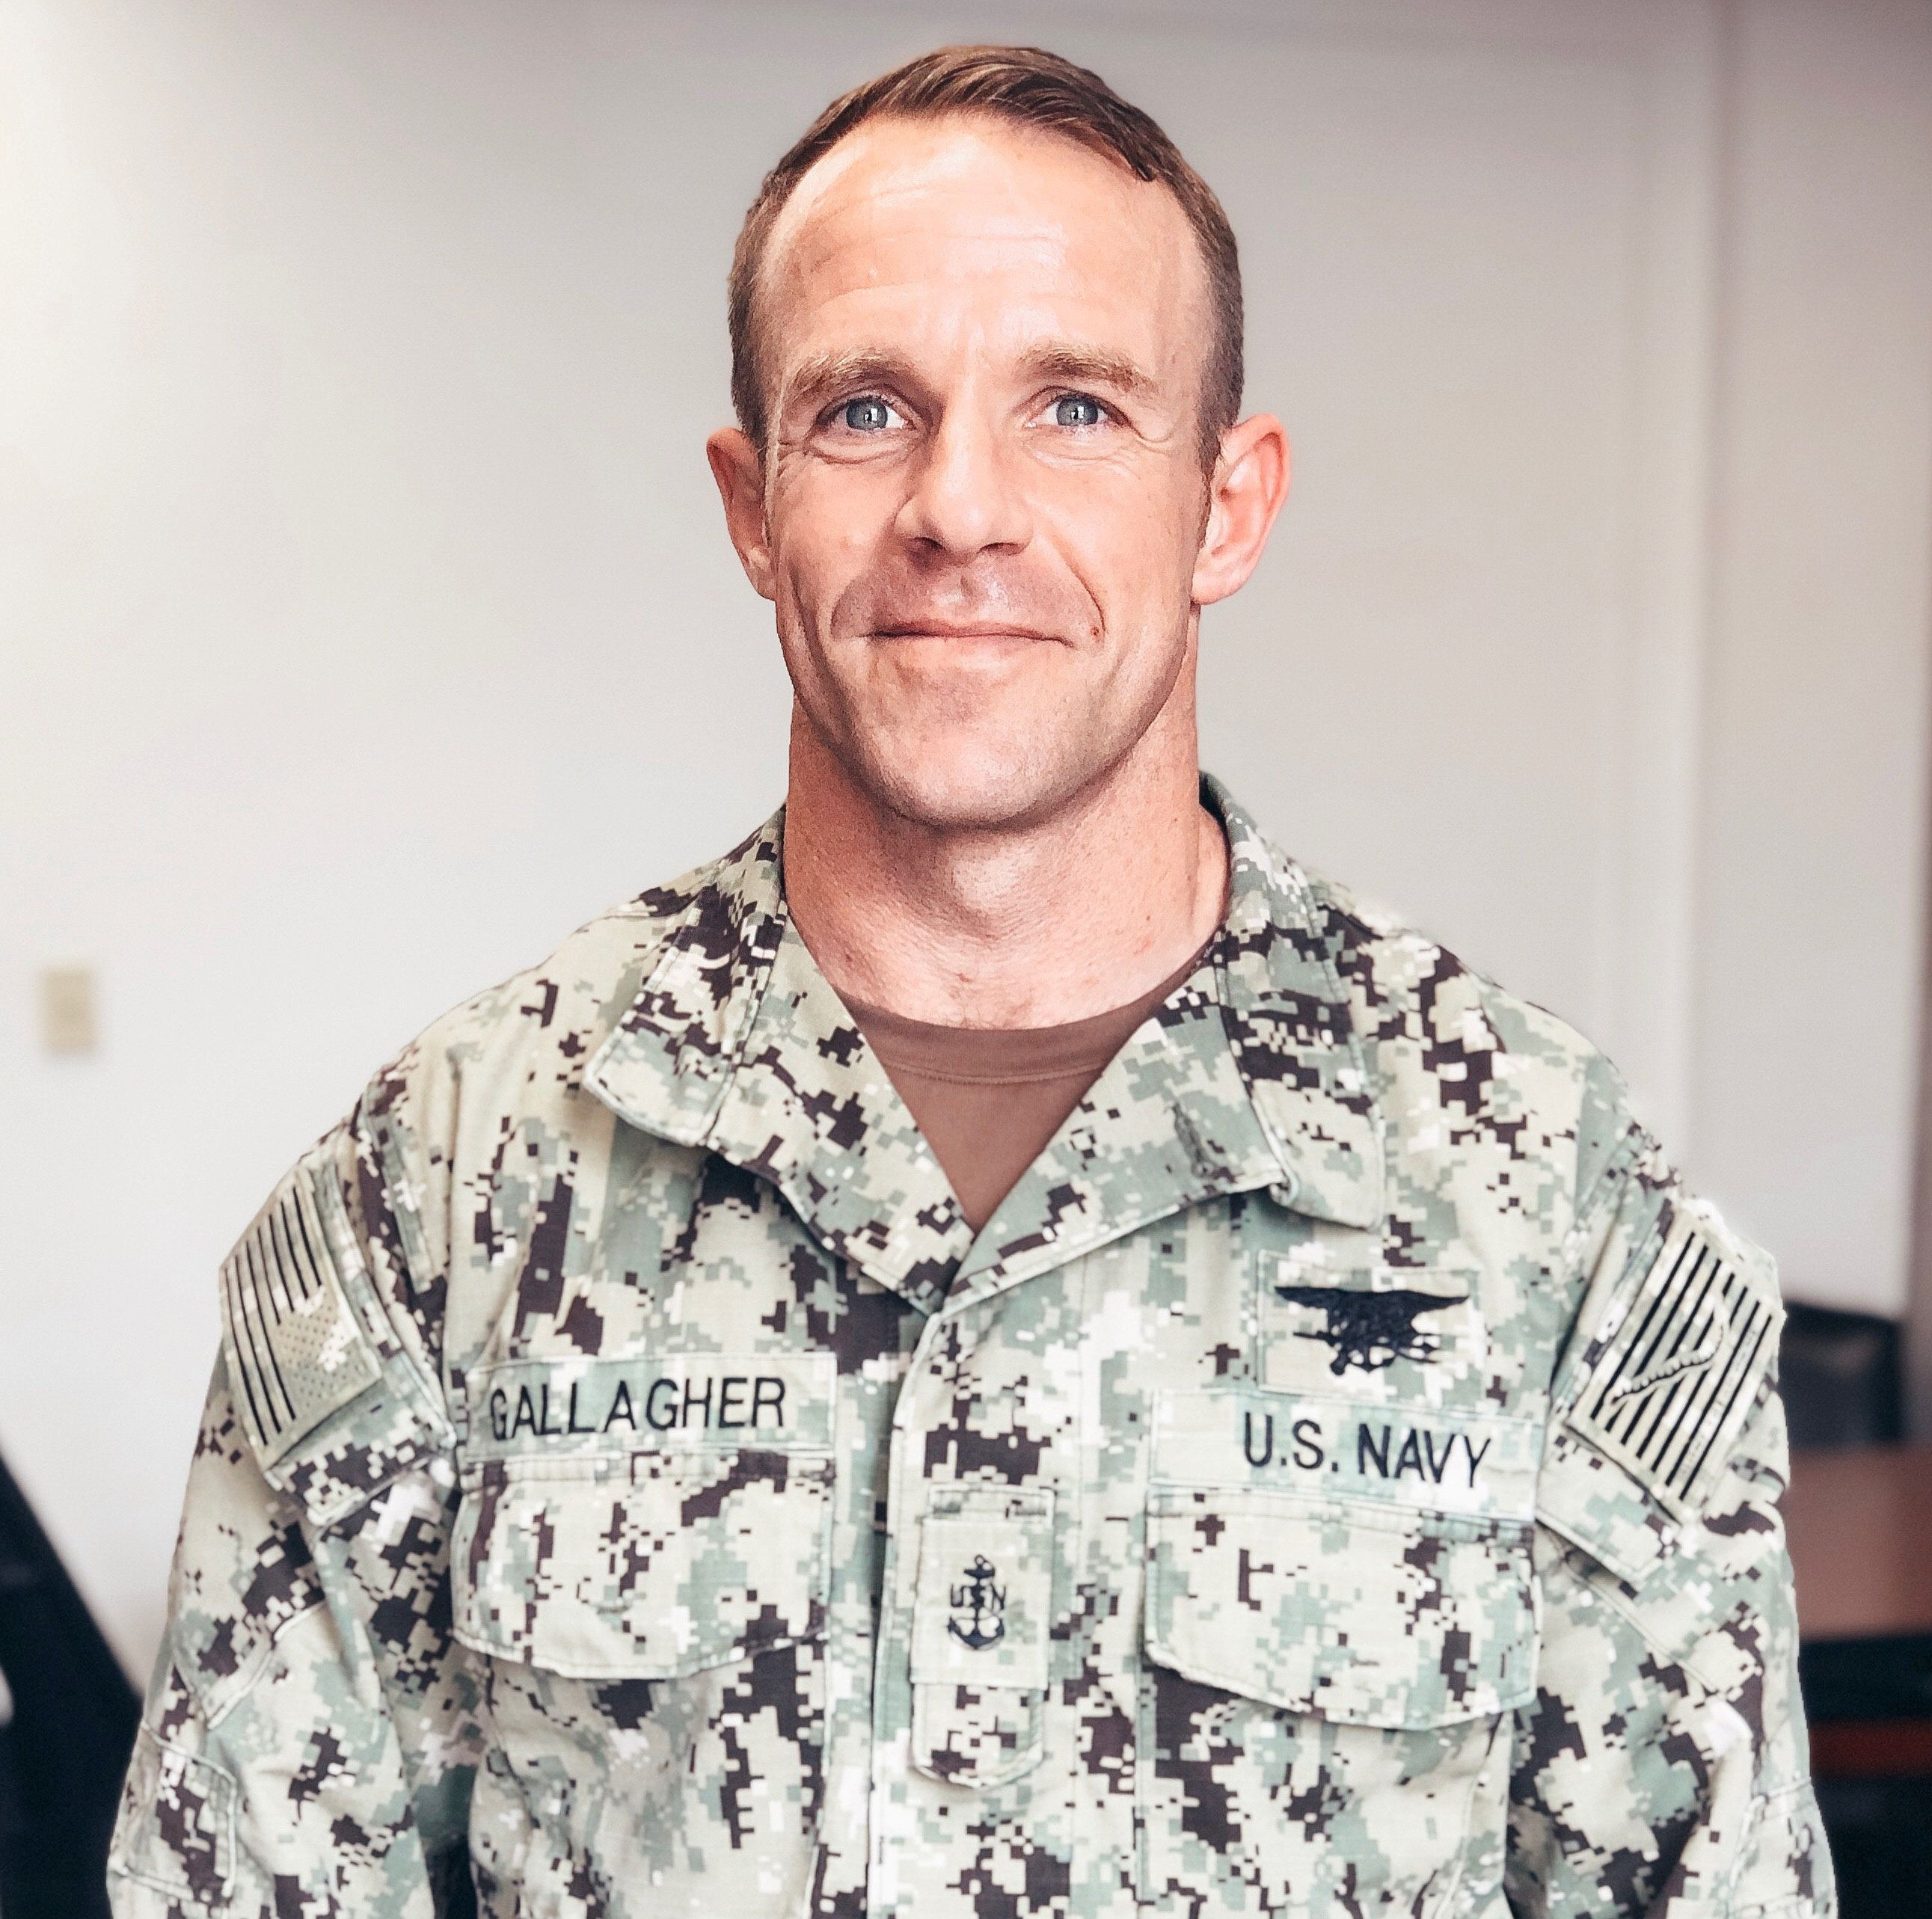 The Military Judge Presiding Over The Court Martial Of A U S Navy Seal Charged With War Crimes Said On Friday Prosecutors Who Electronically Tracked Email Comm Navy Seals War Crime Us Navy